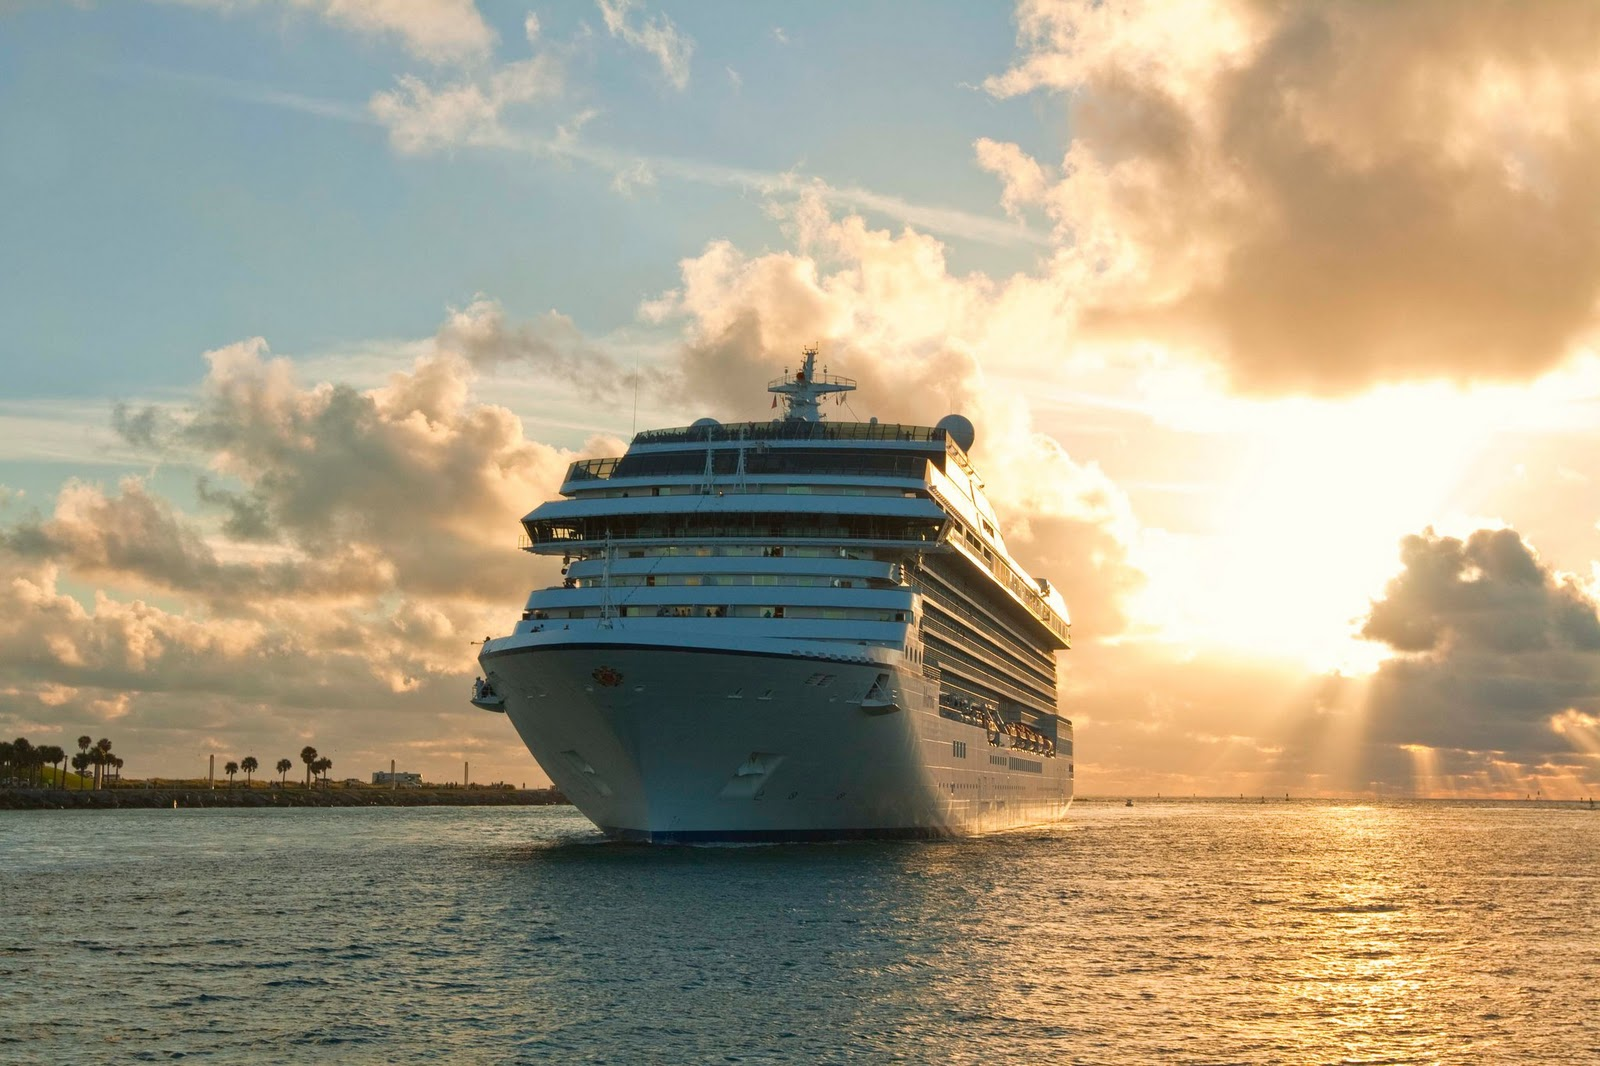 Oceania Cruises – It's Not The Destinations, It's The Journey